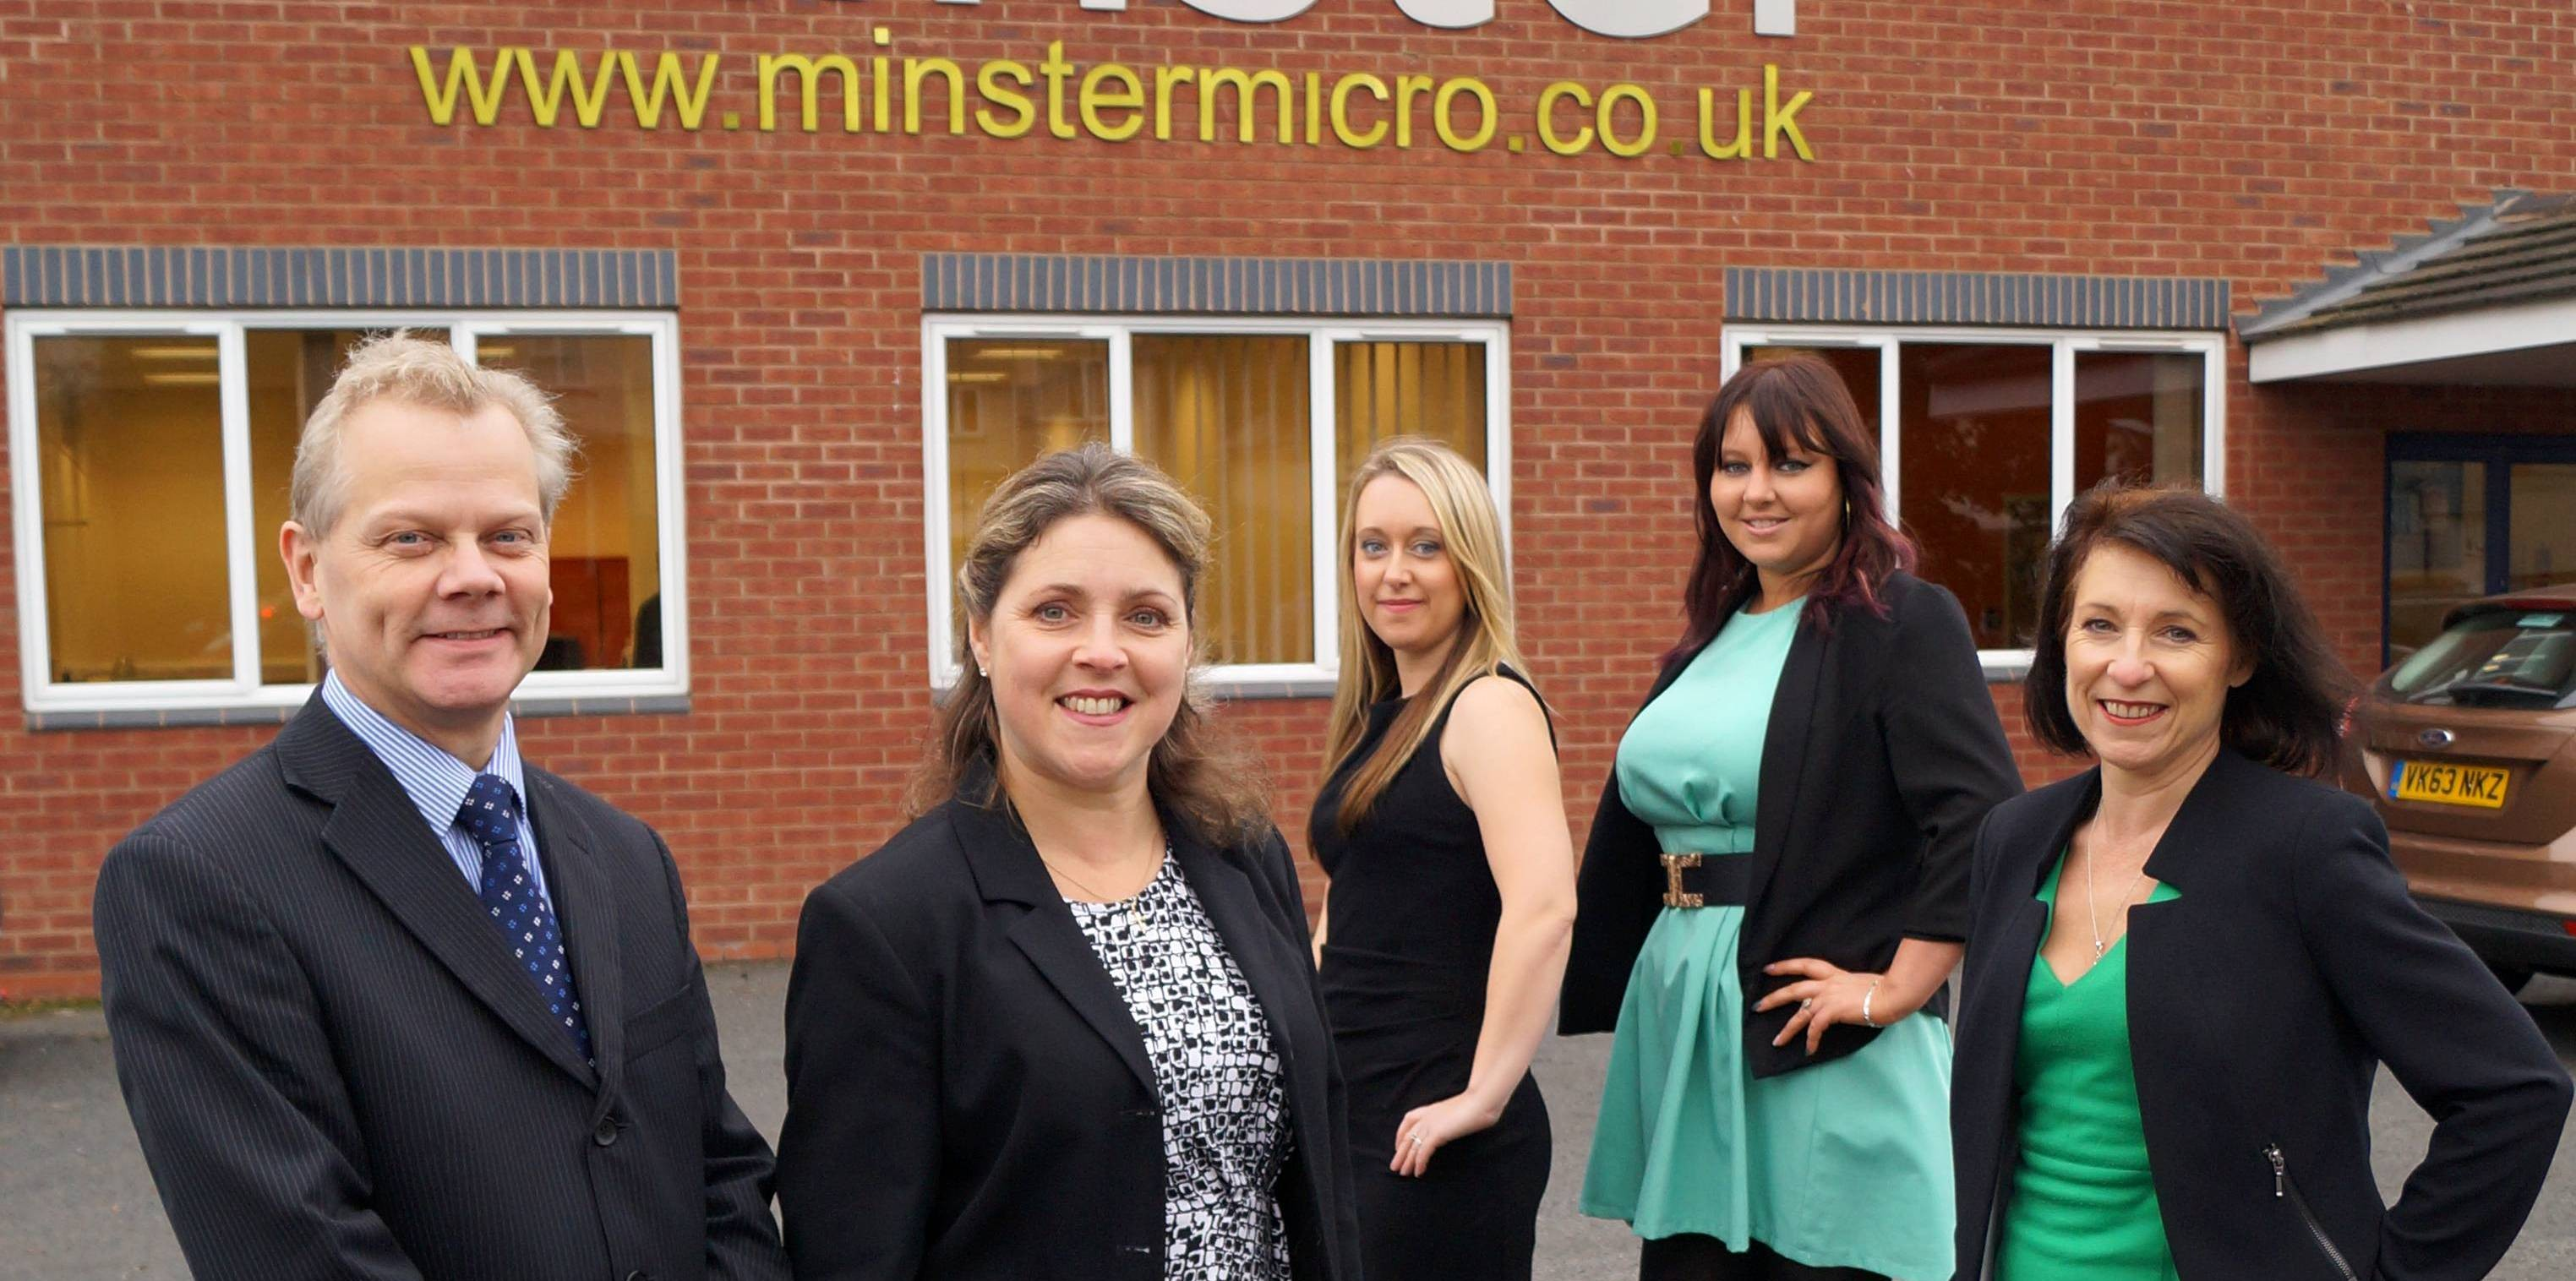 Minster Micro Computers appoint local PR firm Evopr